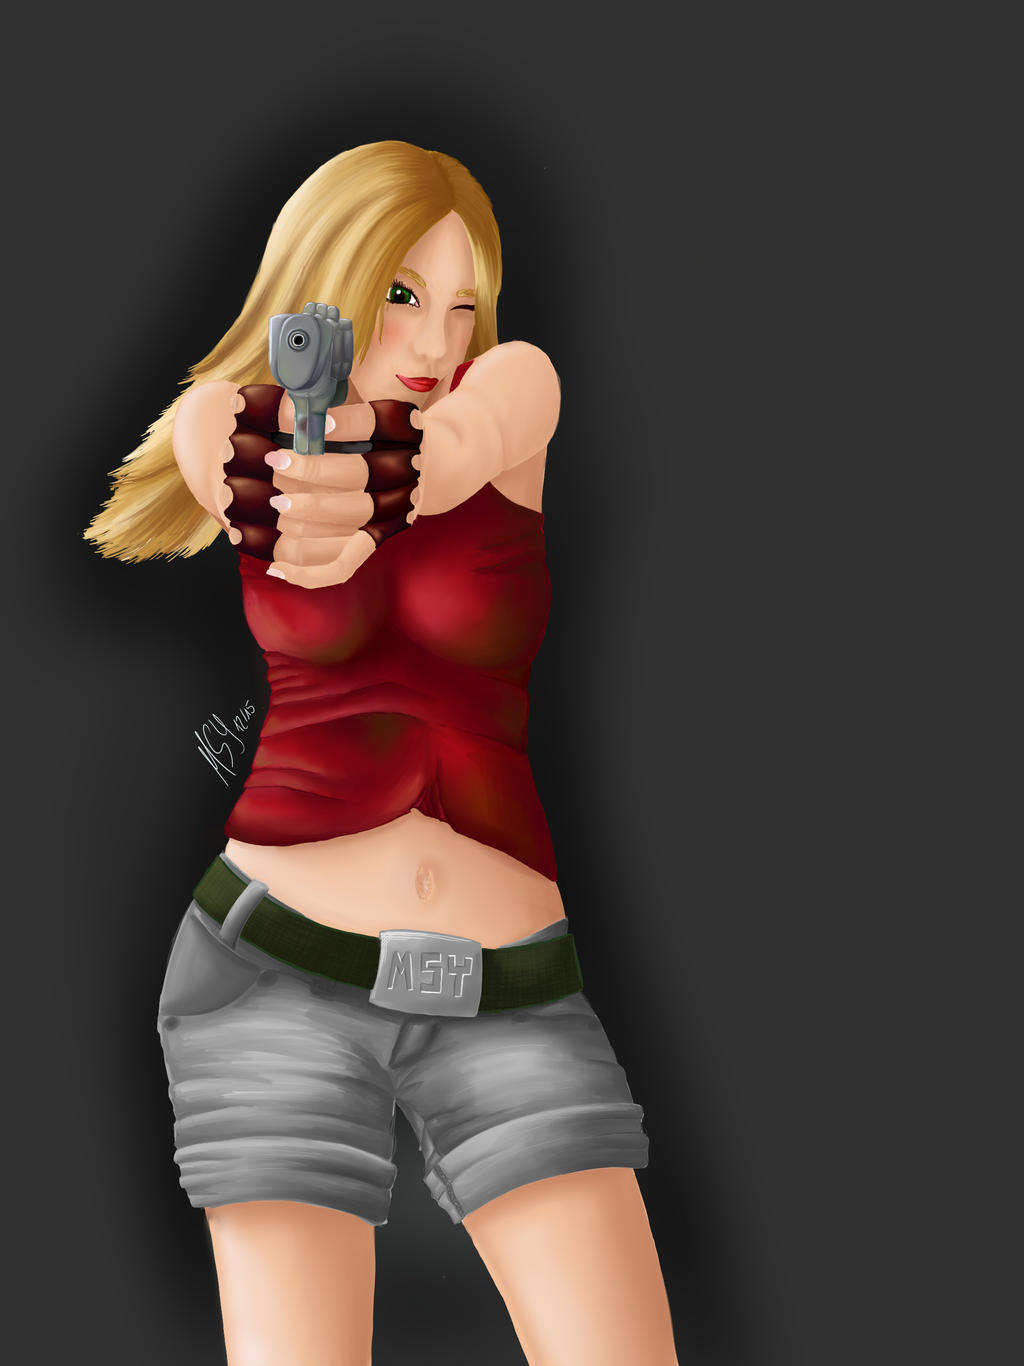 Gungirl By Mesayea On Deviantart Soon, gungirl2 will also be available on steam for free! deviantart